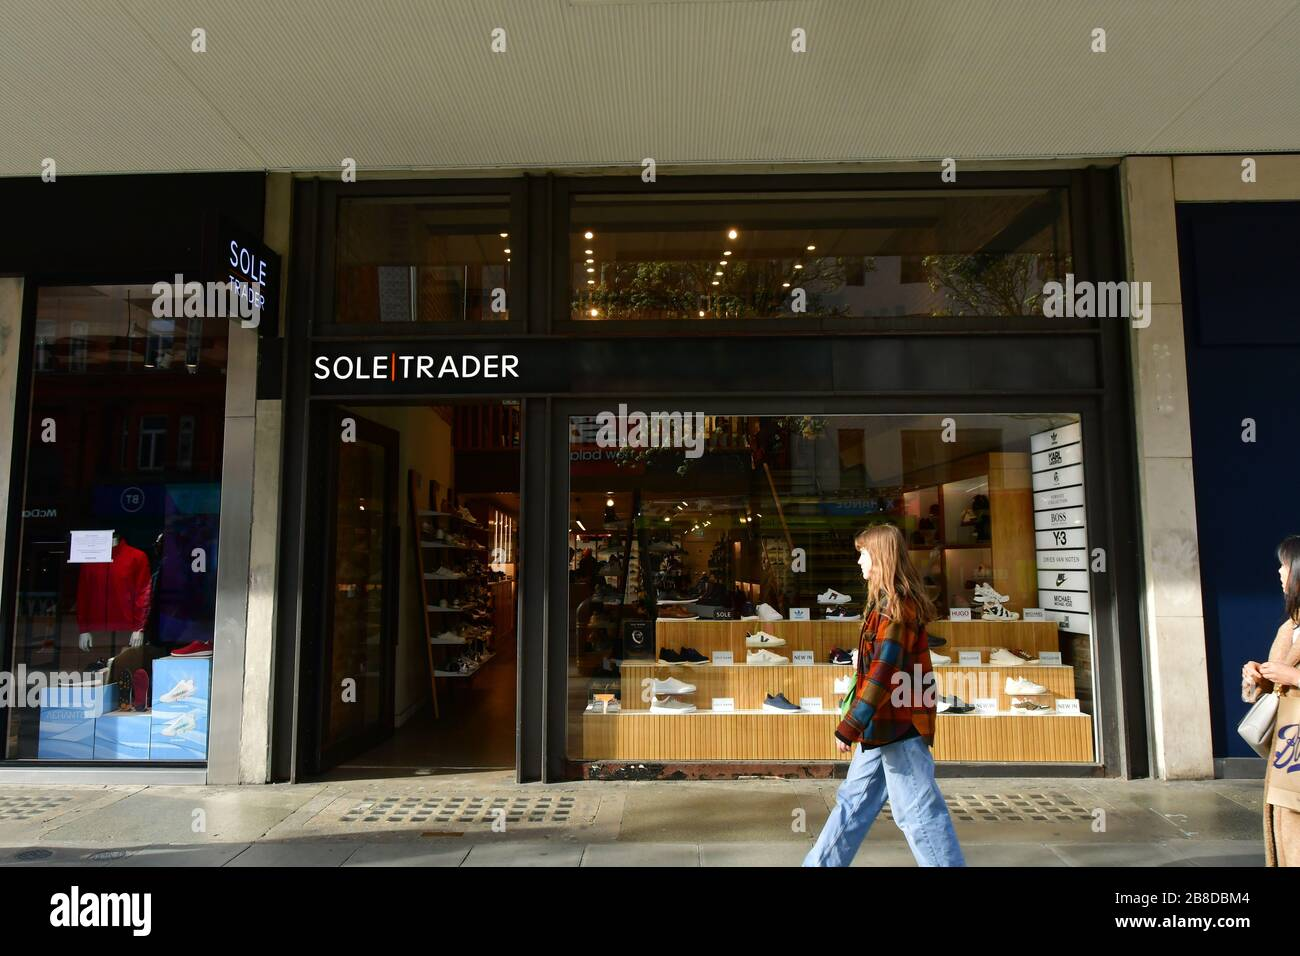 London, UK. 21st March 2020. UK PM Boris Johnson announces closure of pub, bars and restaurants to fight Coronavirus - Pandemic hit Oxford Street many shops closure a few open but empty on 21 March 2020, UK. Credit: Picture Capital/Alamy Live News Stock Photo